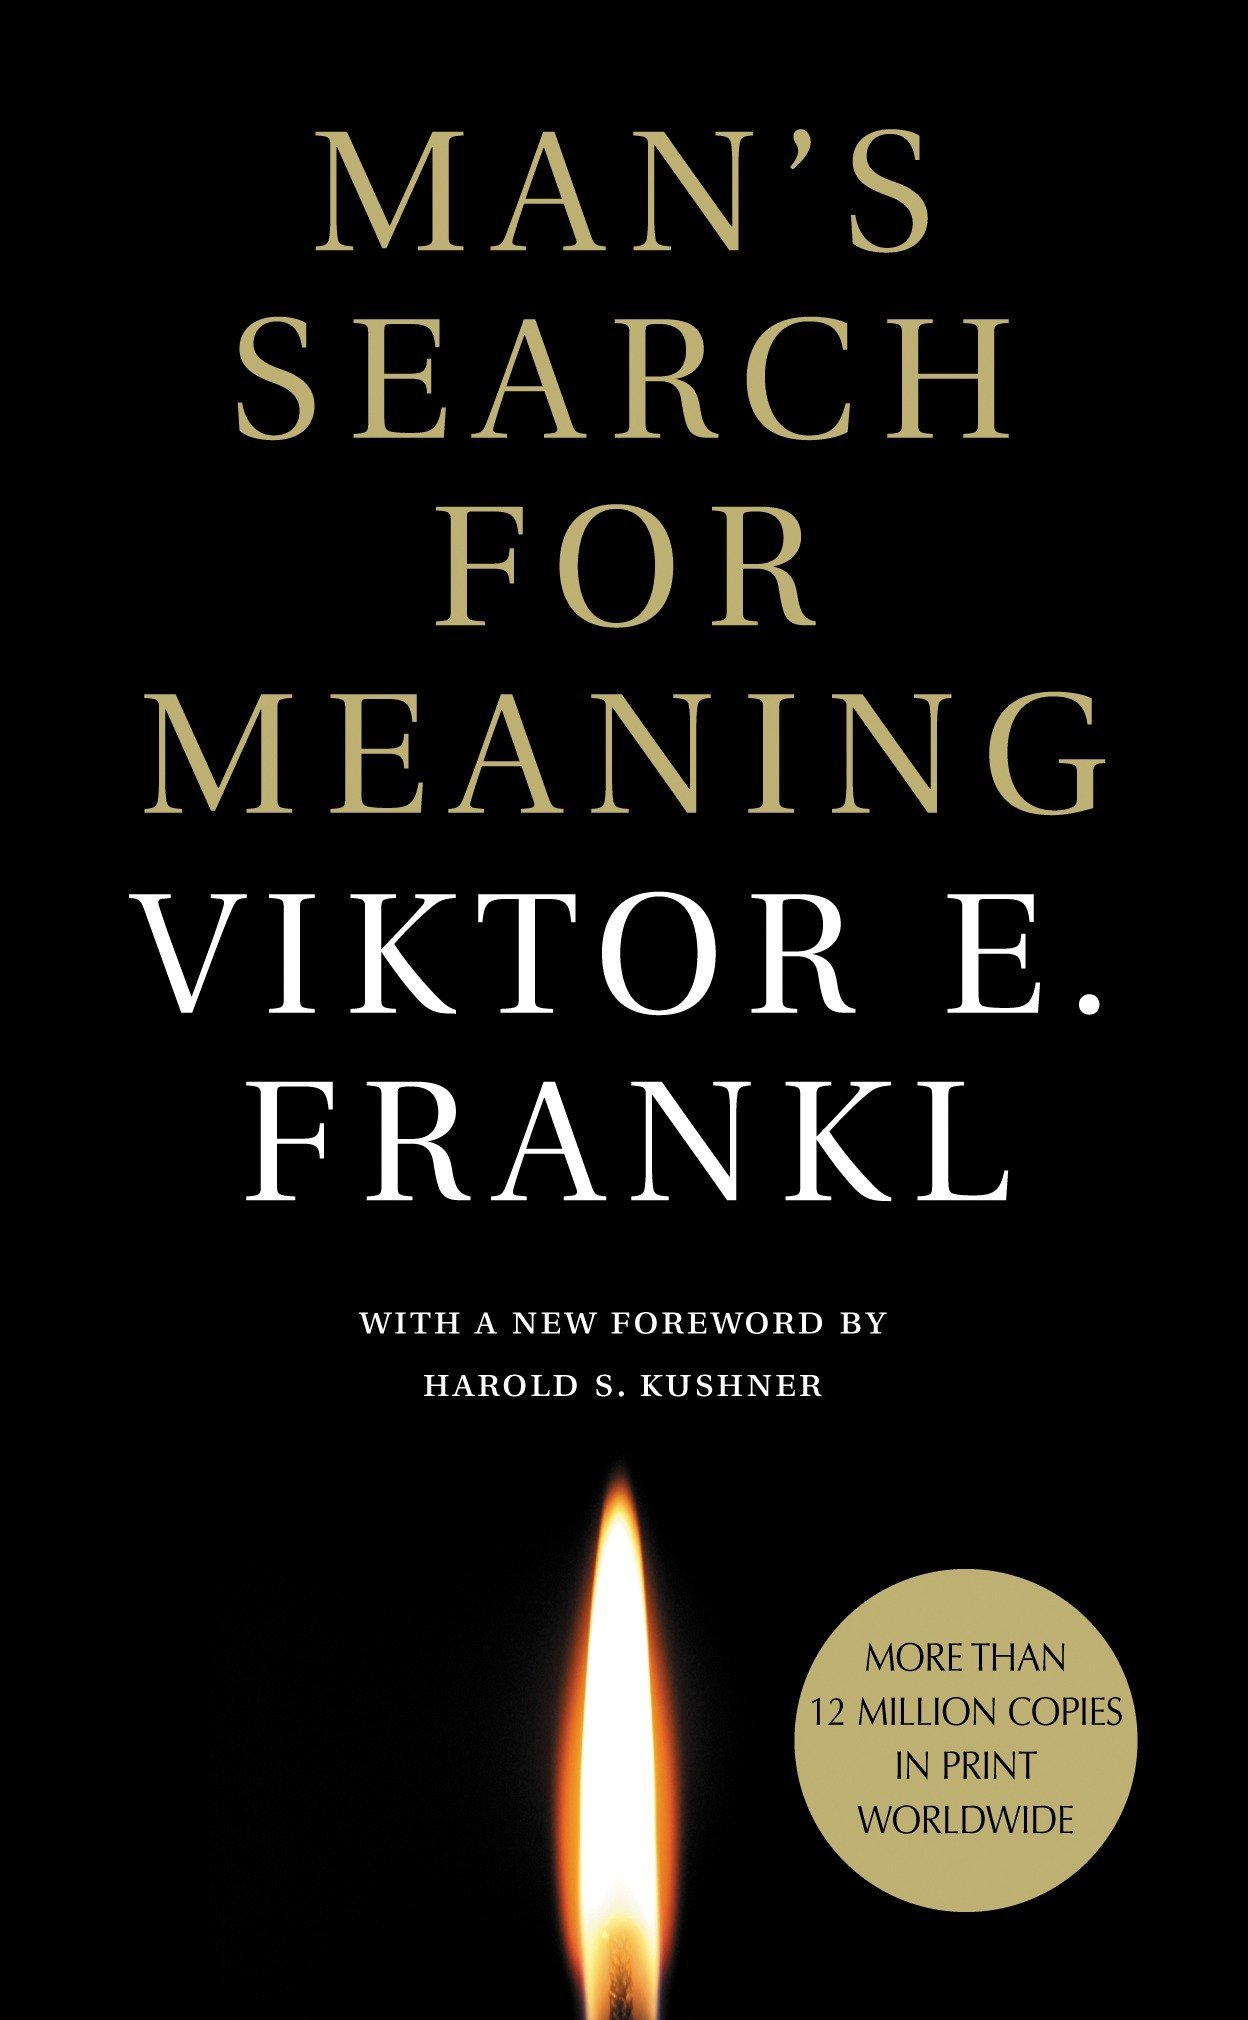 Man's Search For Meaning by Viktor Frankl book cover.